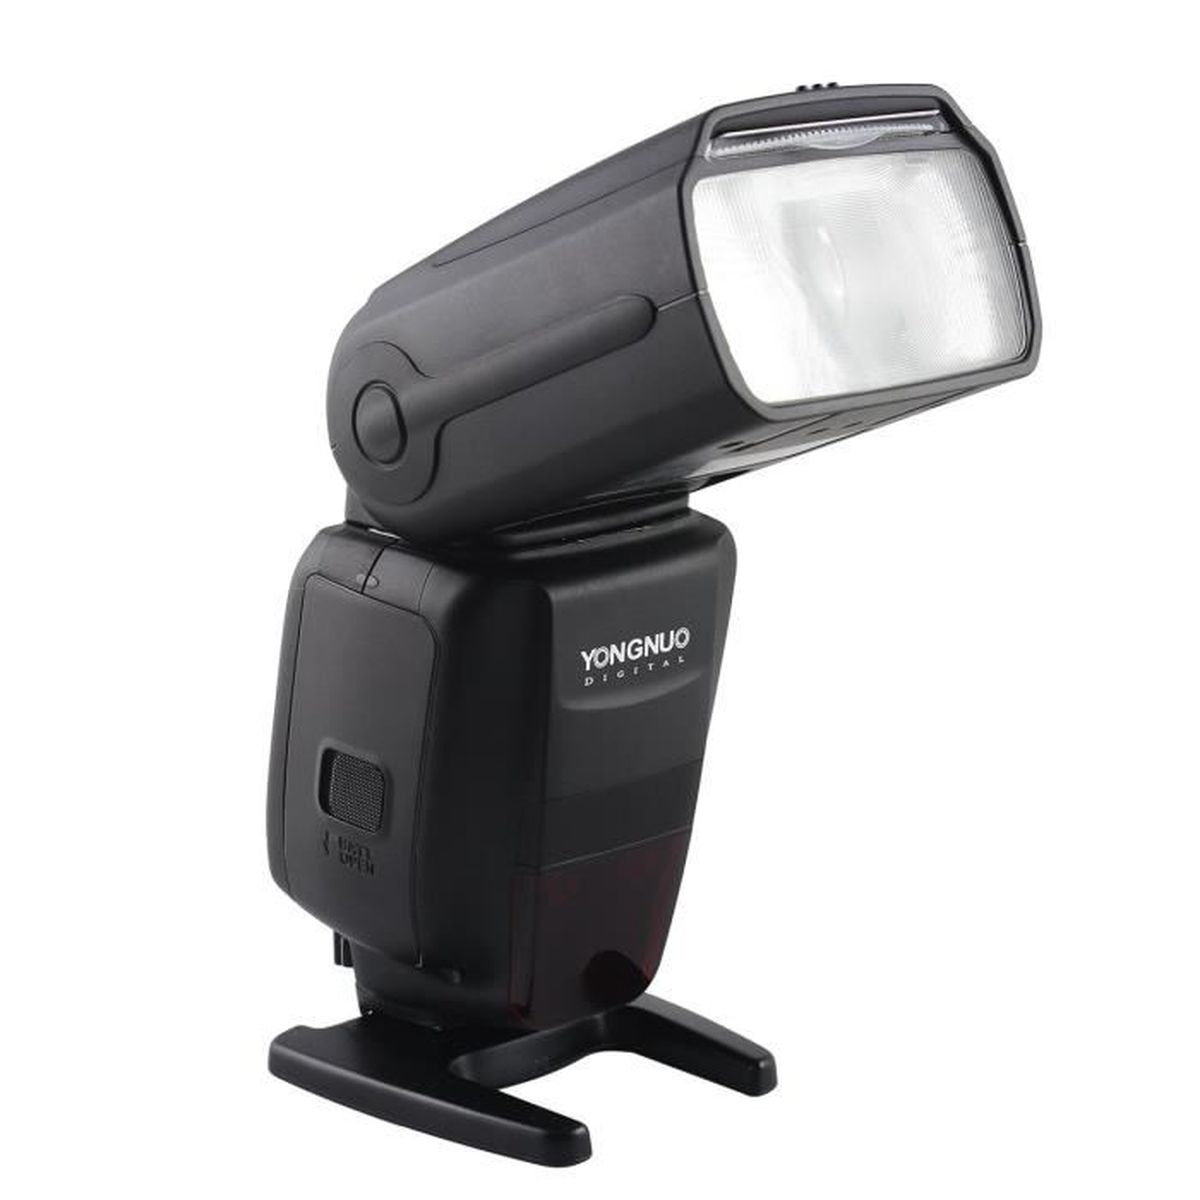 Yongnuo canon 600ex rt flash achat vente flash soldes cdiscount - Cdiscount vente flash ...